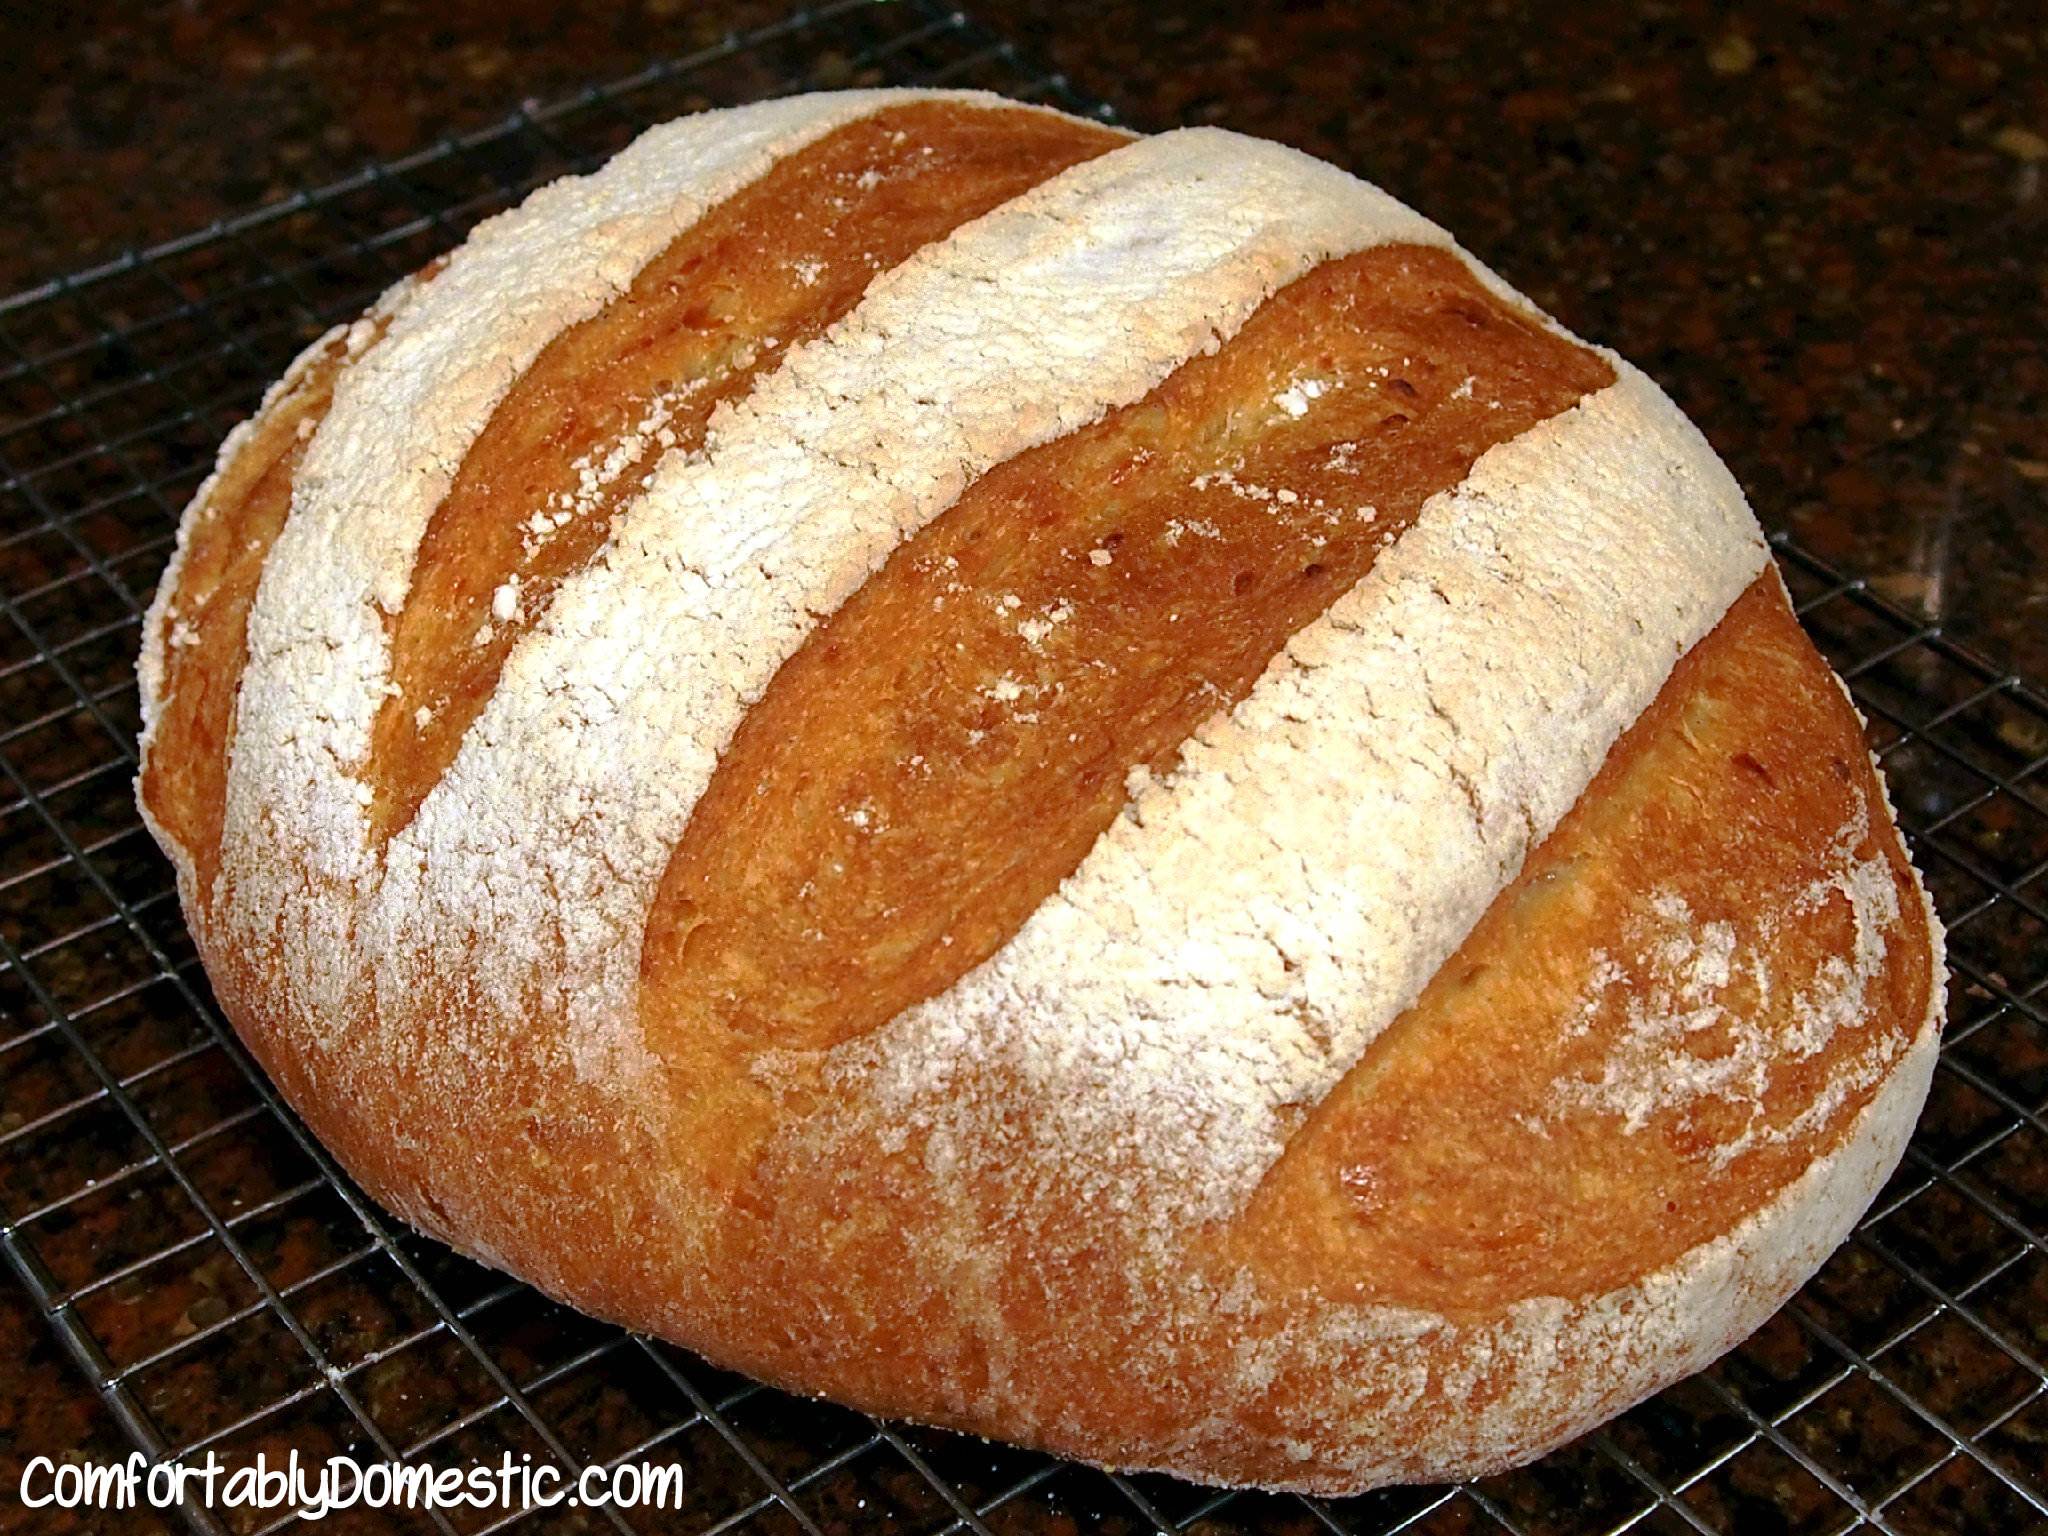 This no knead artisan cheddar bread recipe creates soft and crusty bread that easily comes together with a wooden spoon and requires absolutely no kneading! Get the recipe on ComfortablyDomestic.com